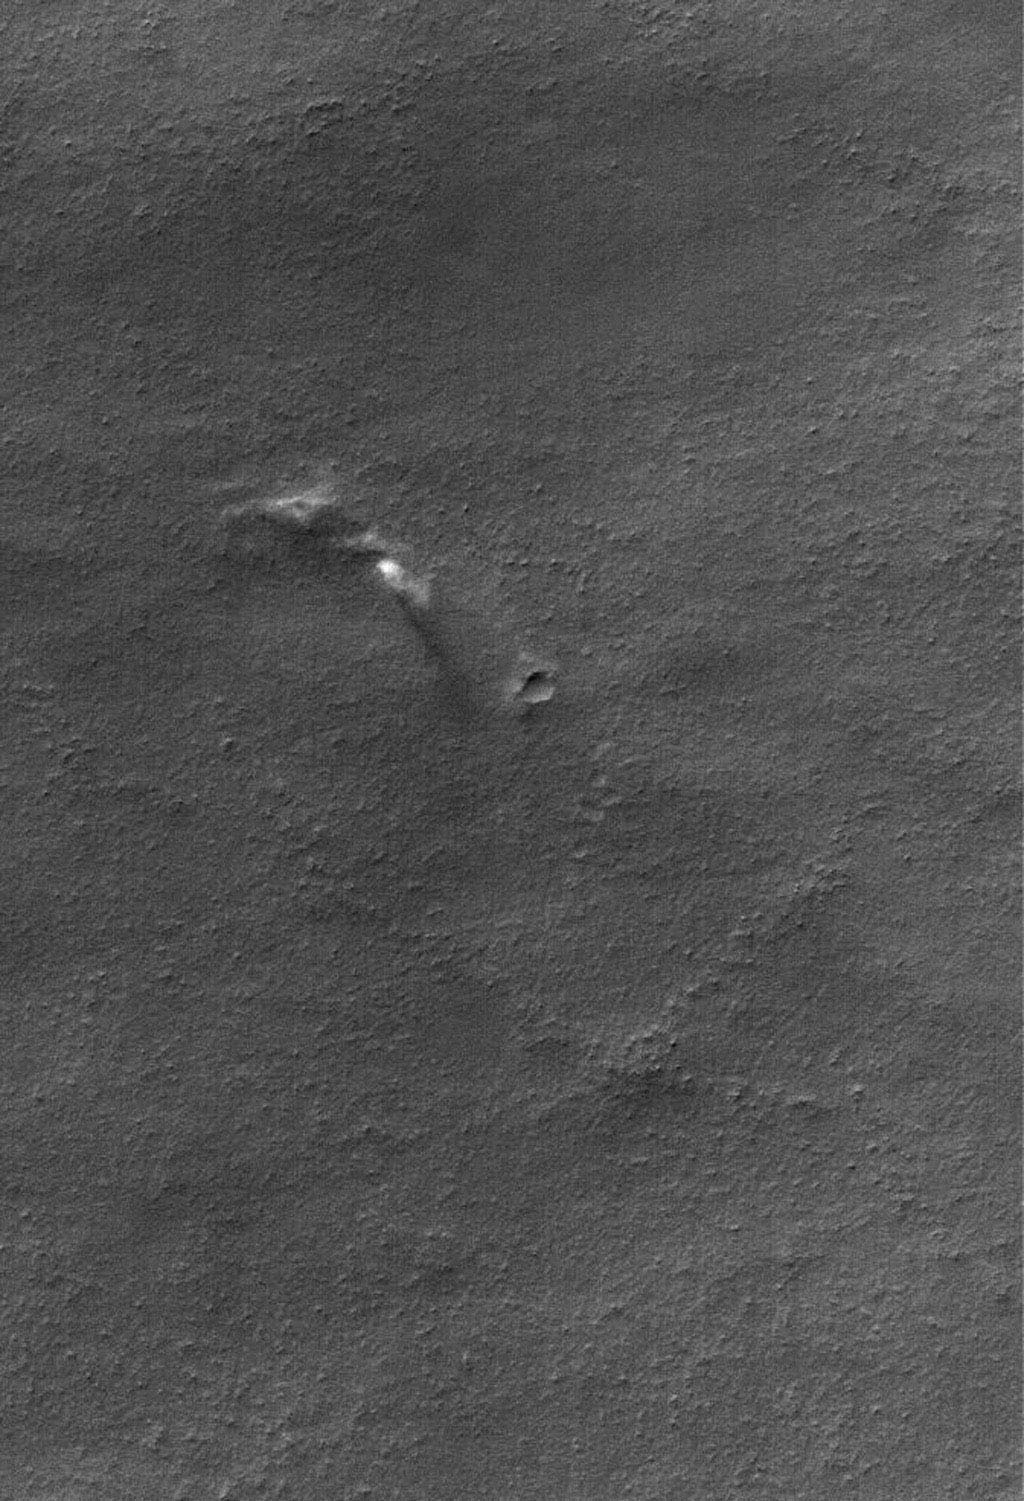 This image from NASA's Mars Global Surveyor shows dust plumes created by gusting winds on a plain southwest of Argyre Planitia.